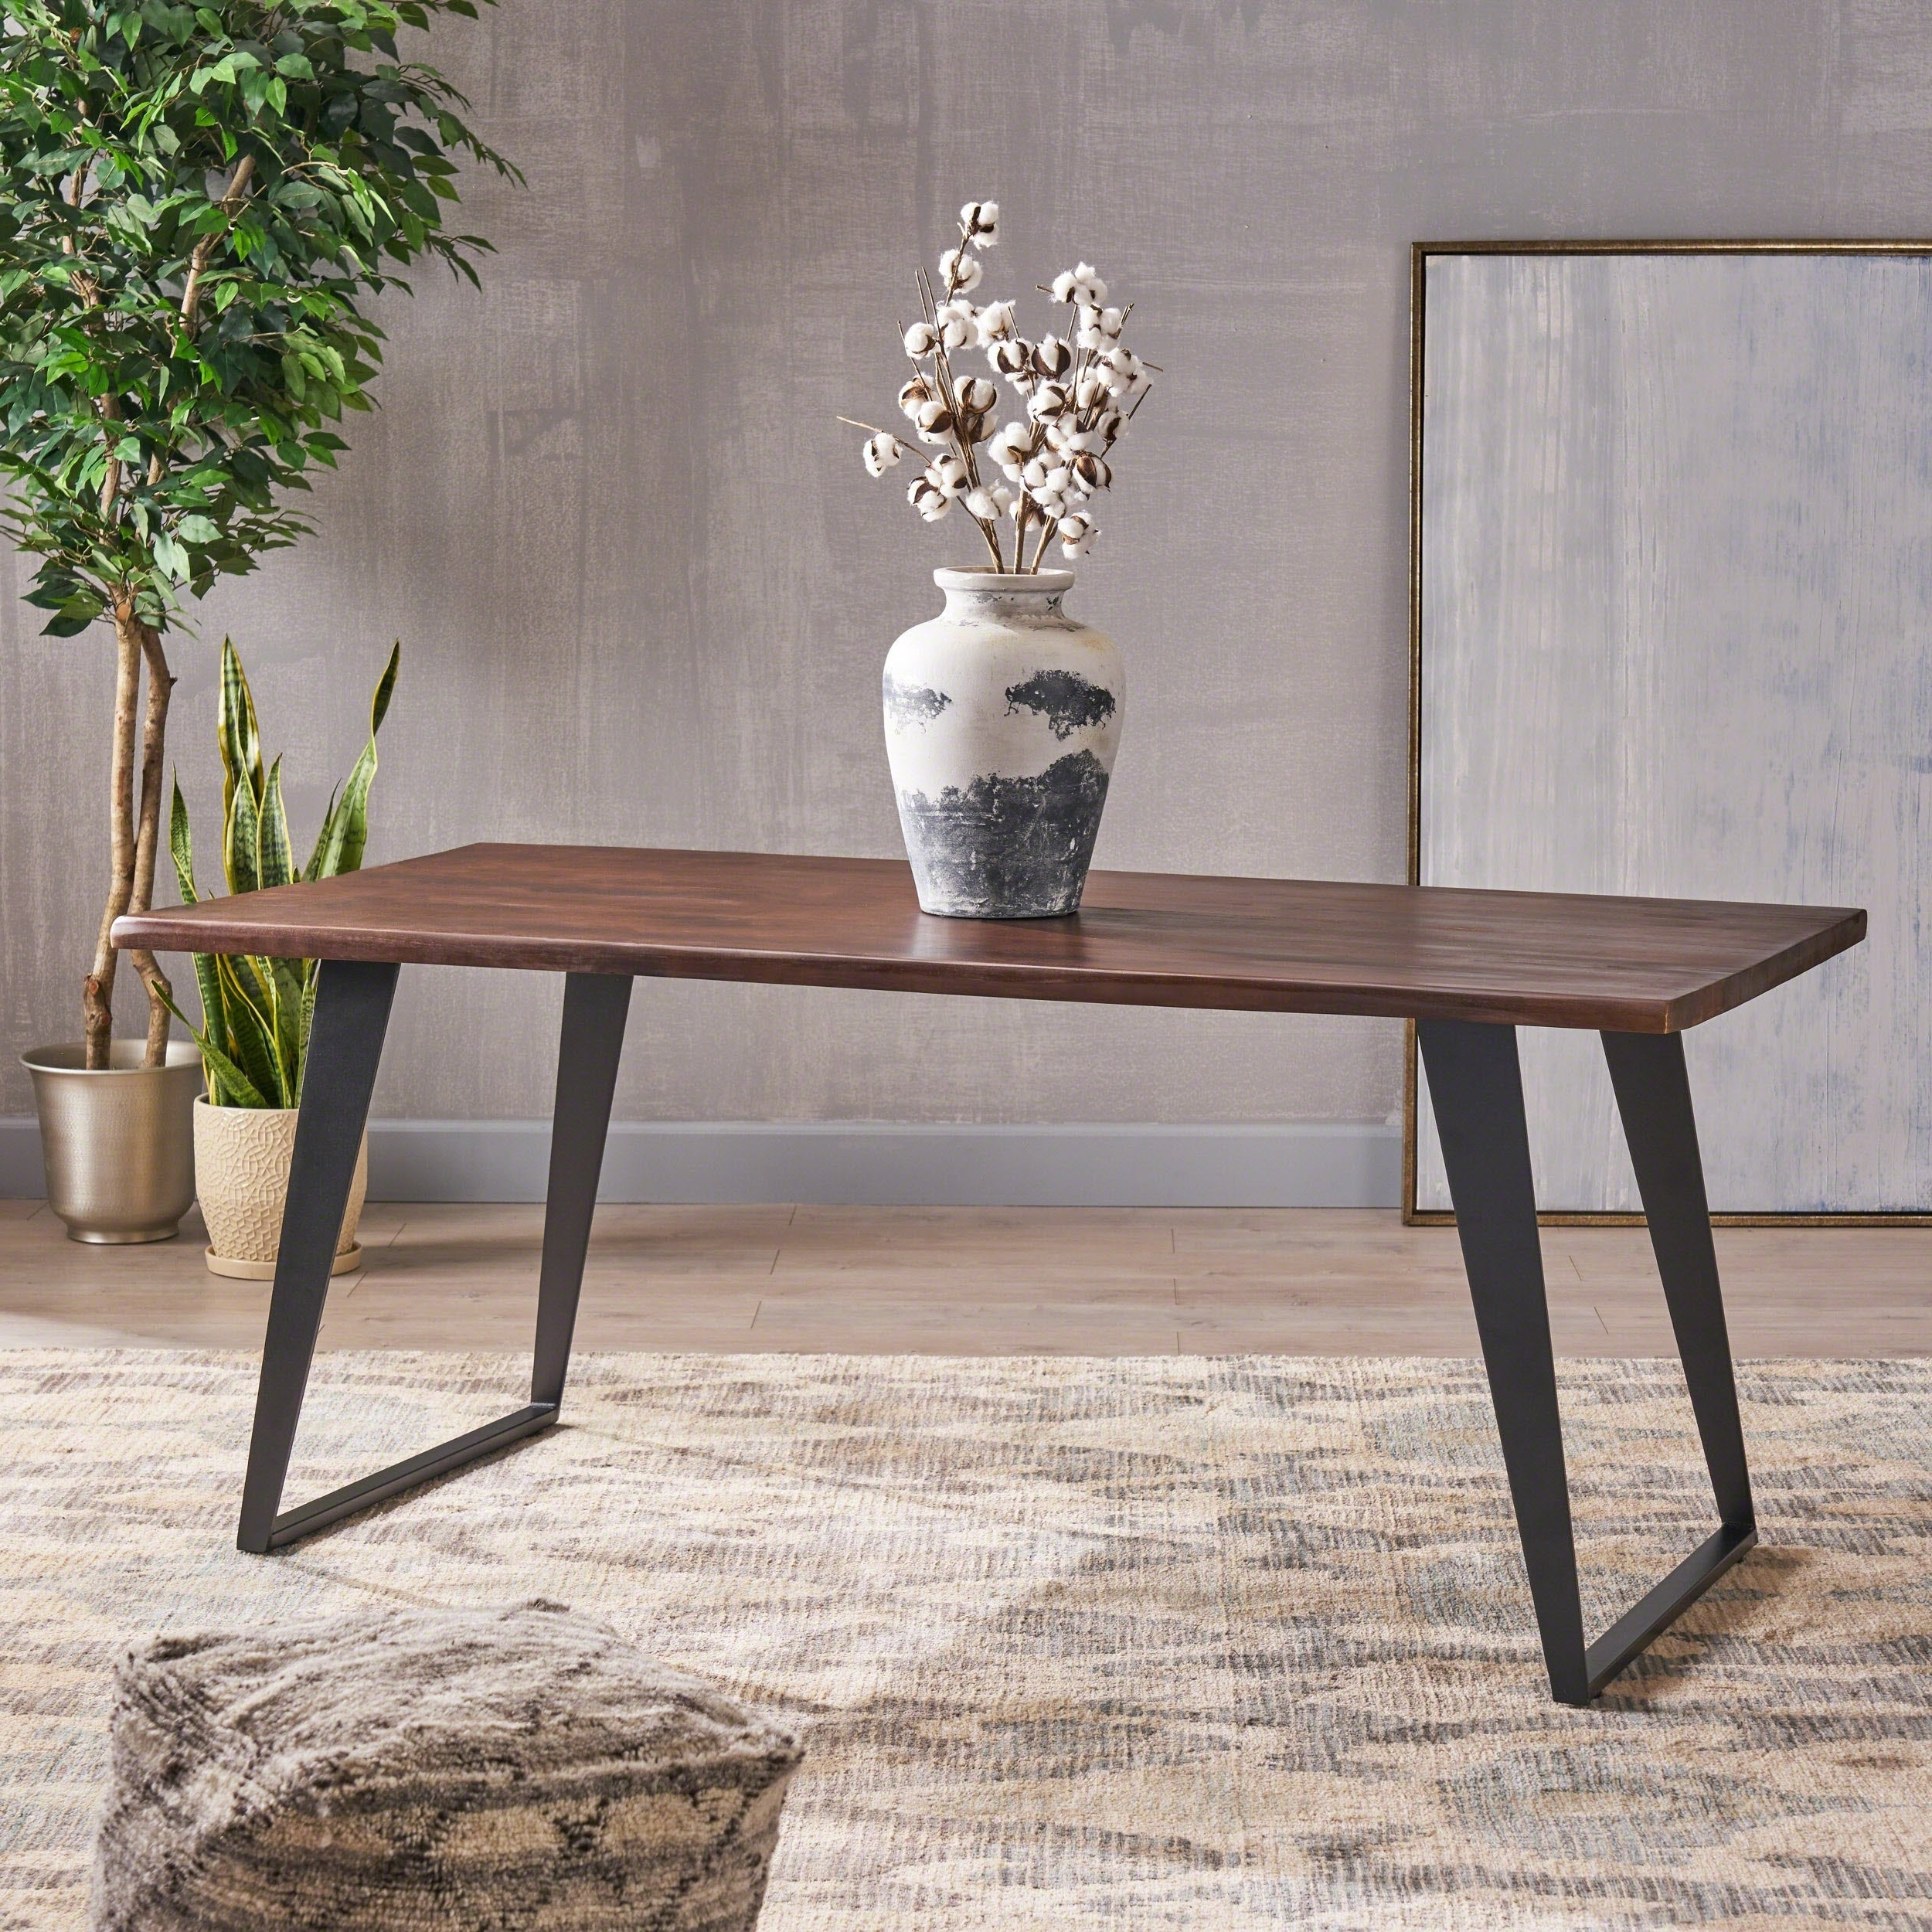 Cavalier Contemporary Indoor 6 Seater Rectangular Acacia Wood Dining Table Christopher Knight Home In 2019 Acacia Wood Top Dining Tables With Iron Legs On Raw Metal (View 16 of 25)